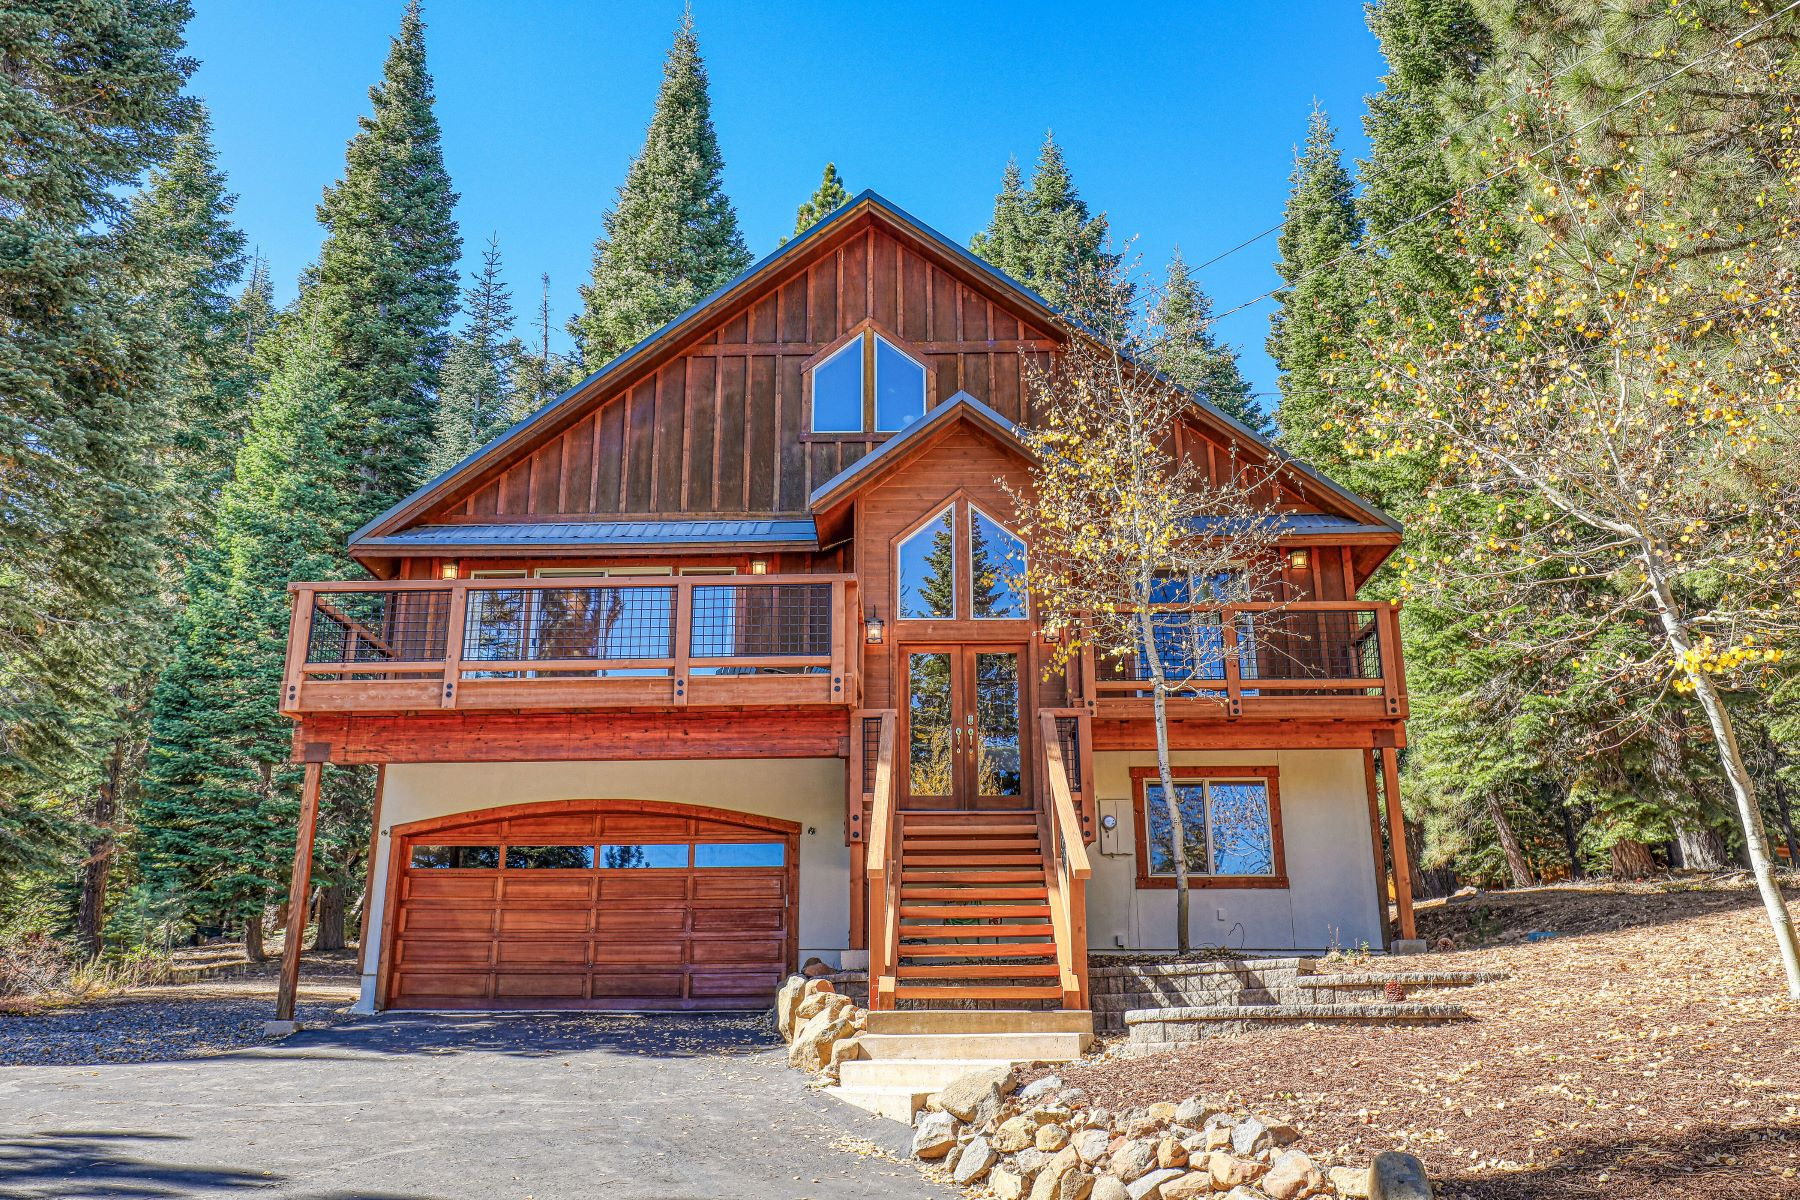 Single Family Homes for Active at 13581 Pathway Avenue, Truckee, CA 96161 13581 Pathway Avenue Truckee, California 96161 United States